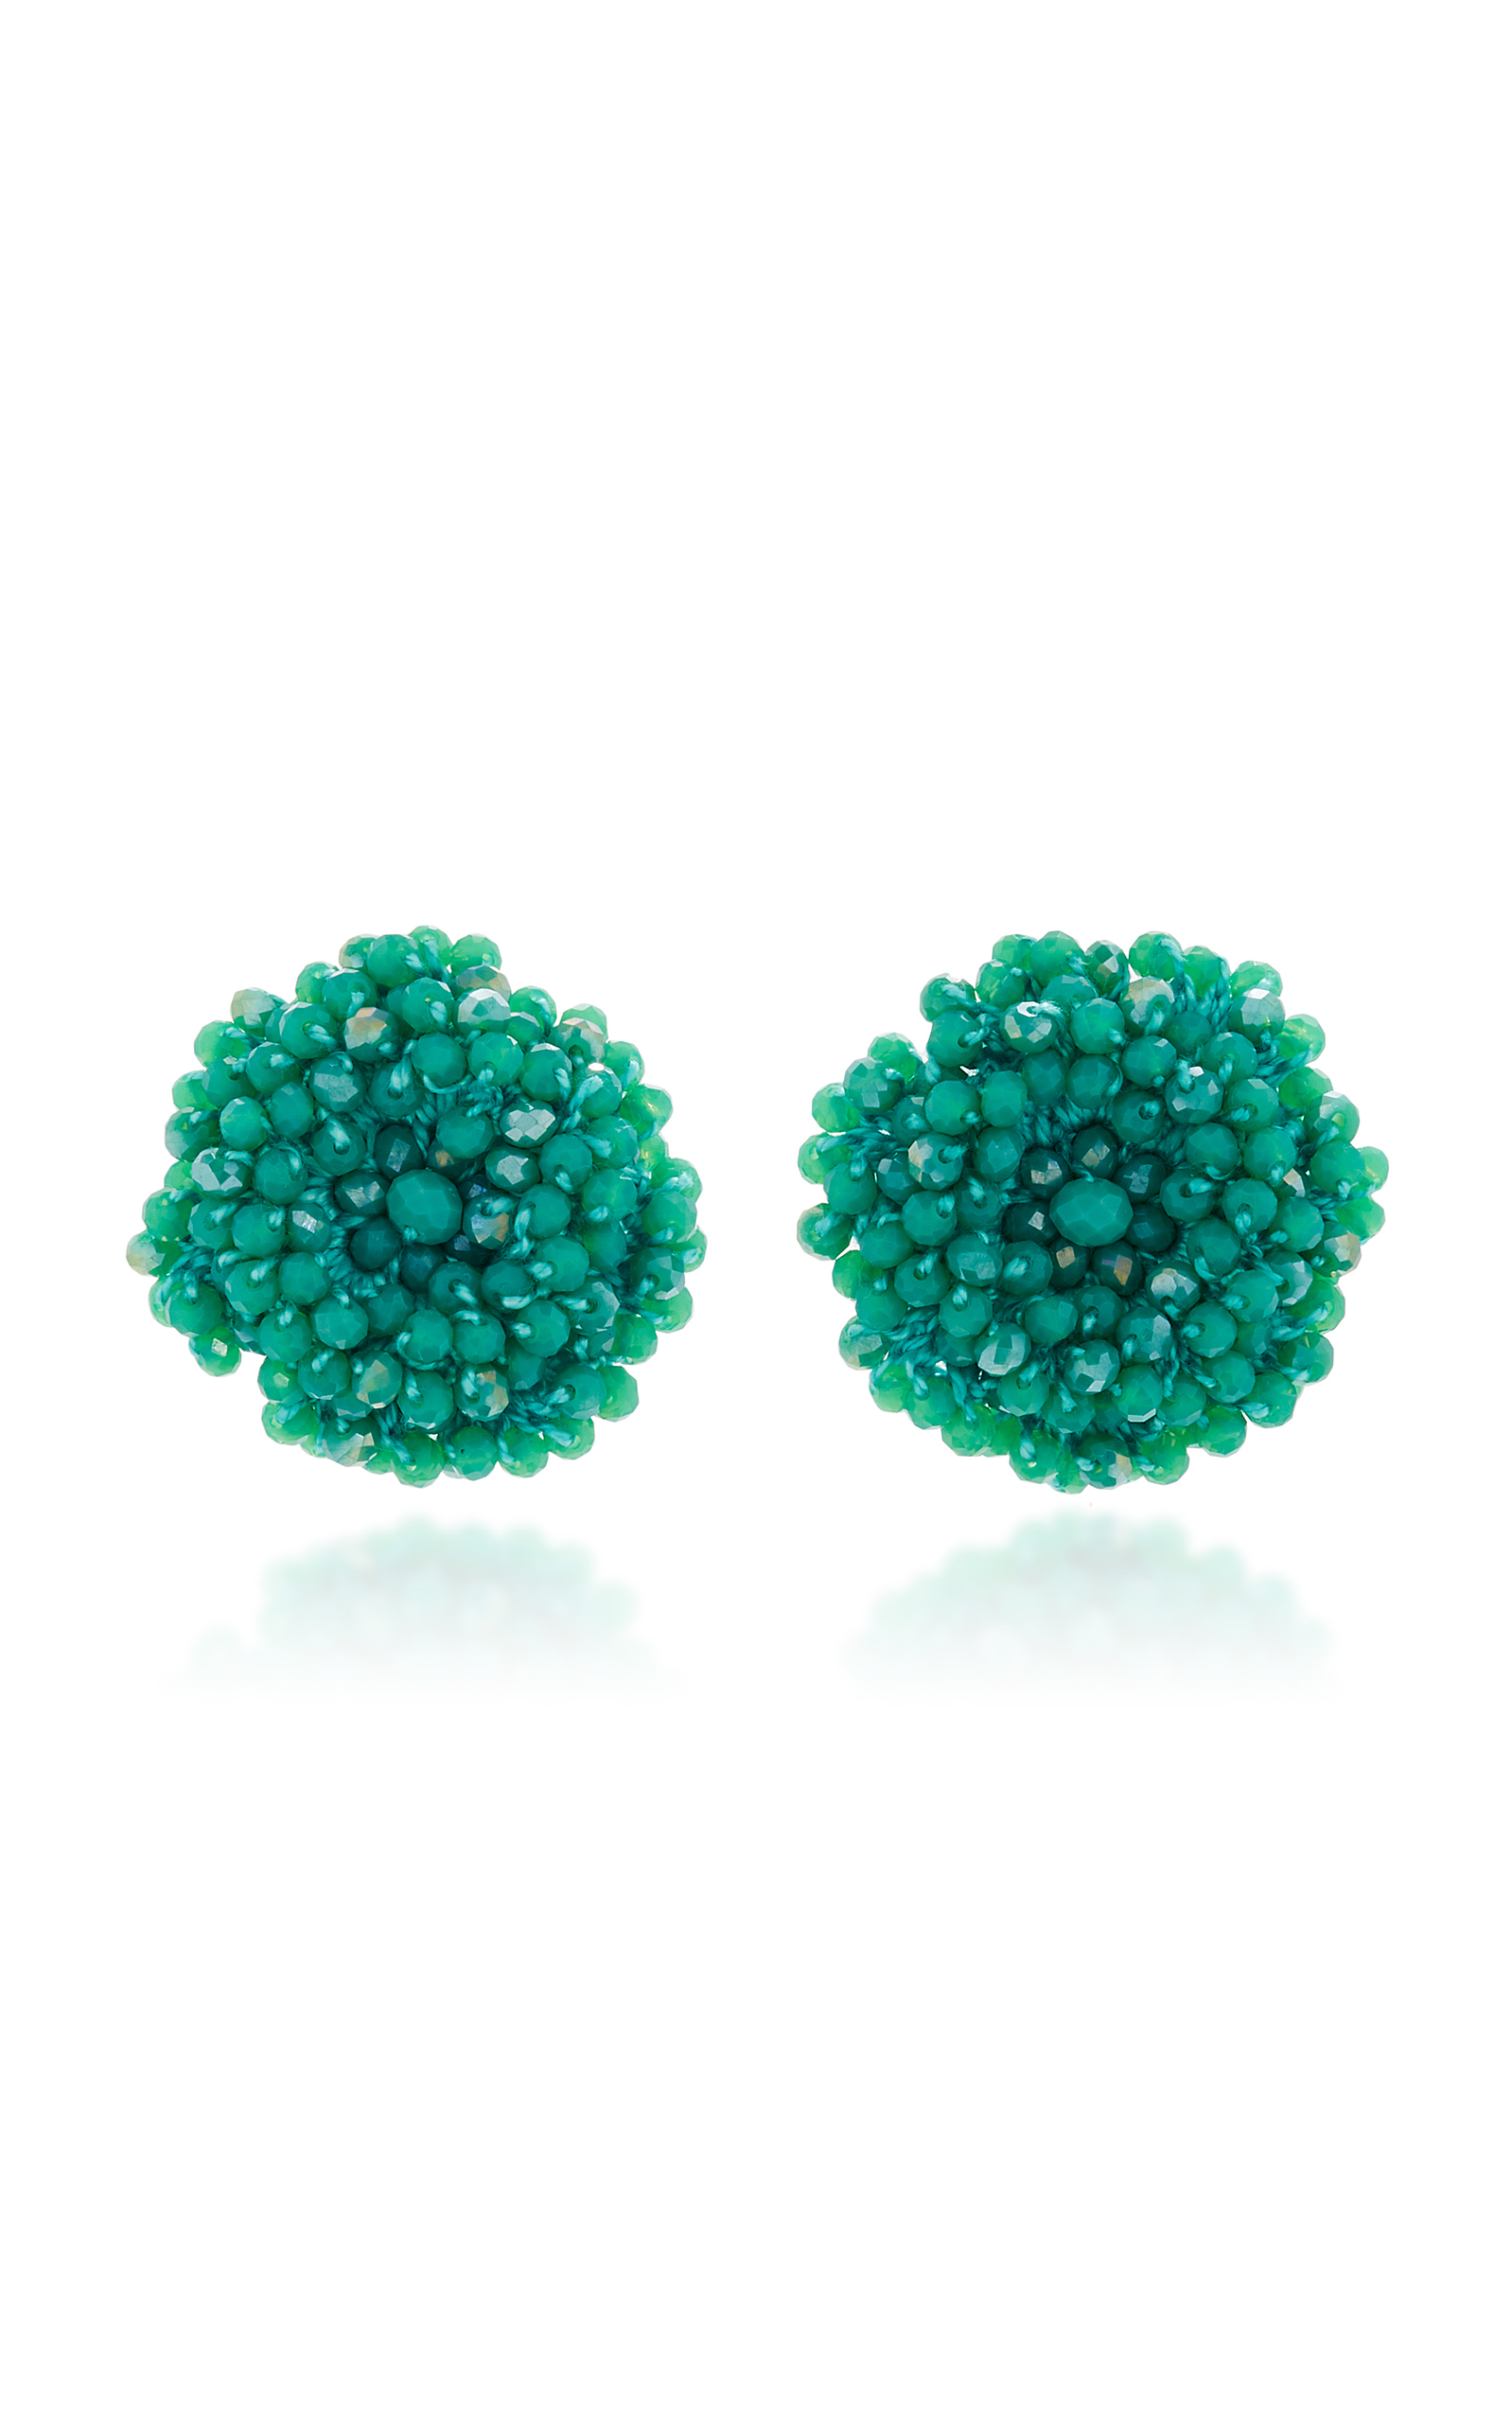 large_bibi-marini-green-mint-beaded-blossom-earrings.jpg